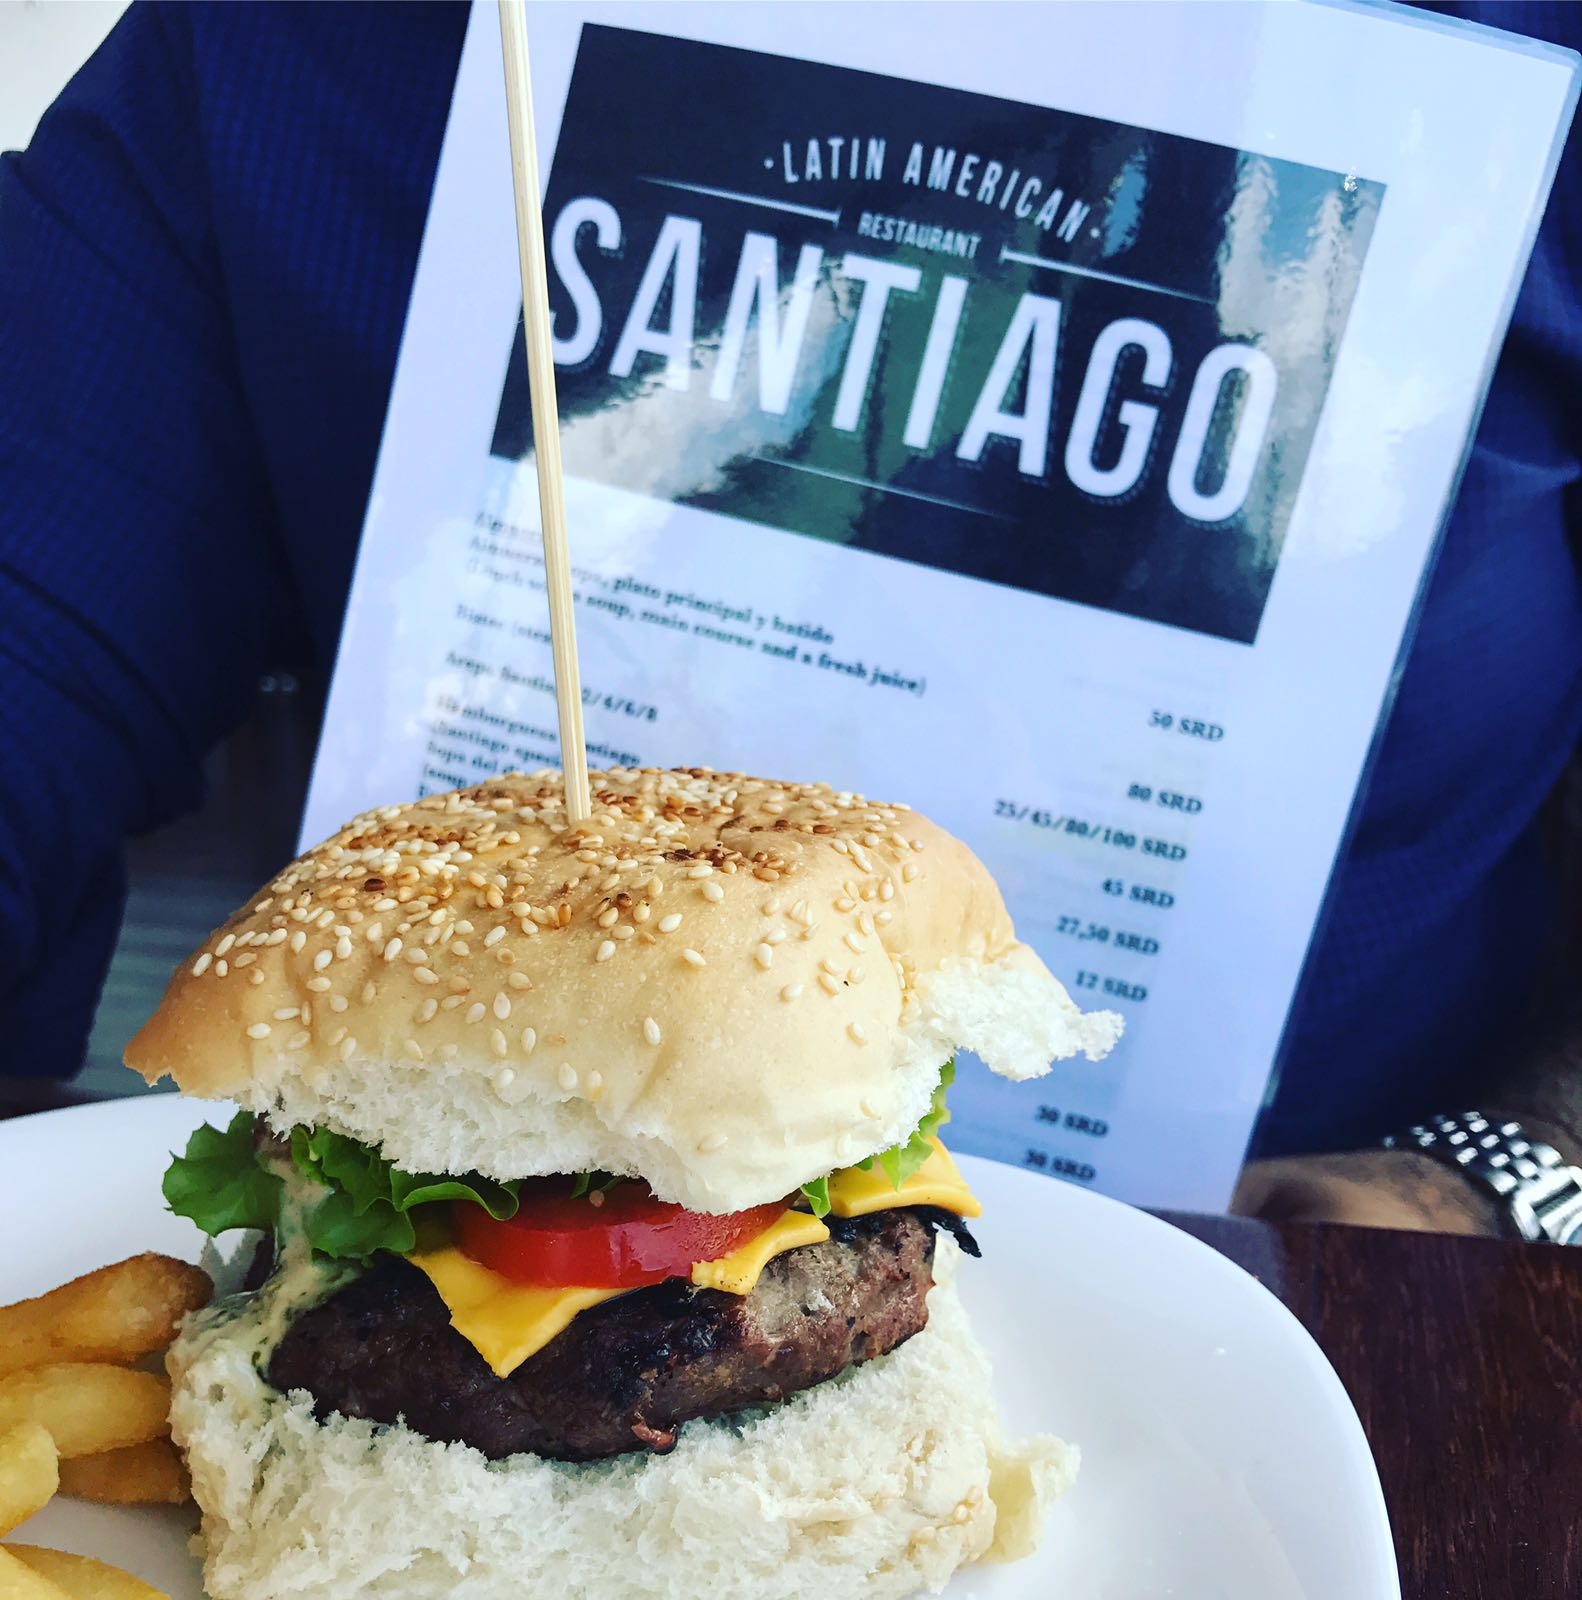 Your favorite burger at Santiago's